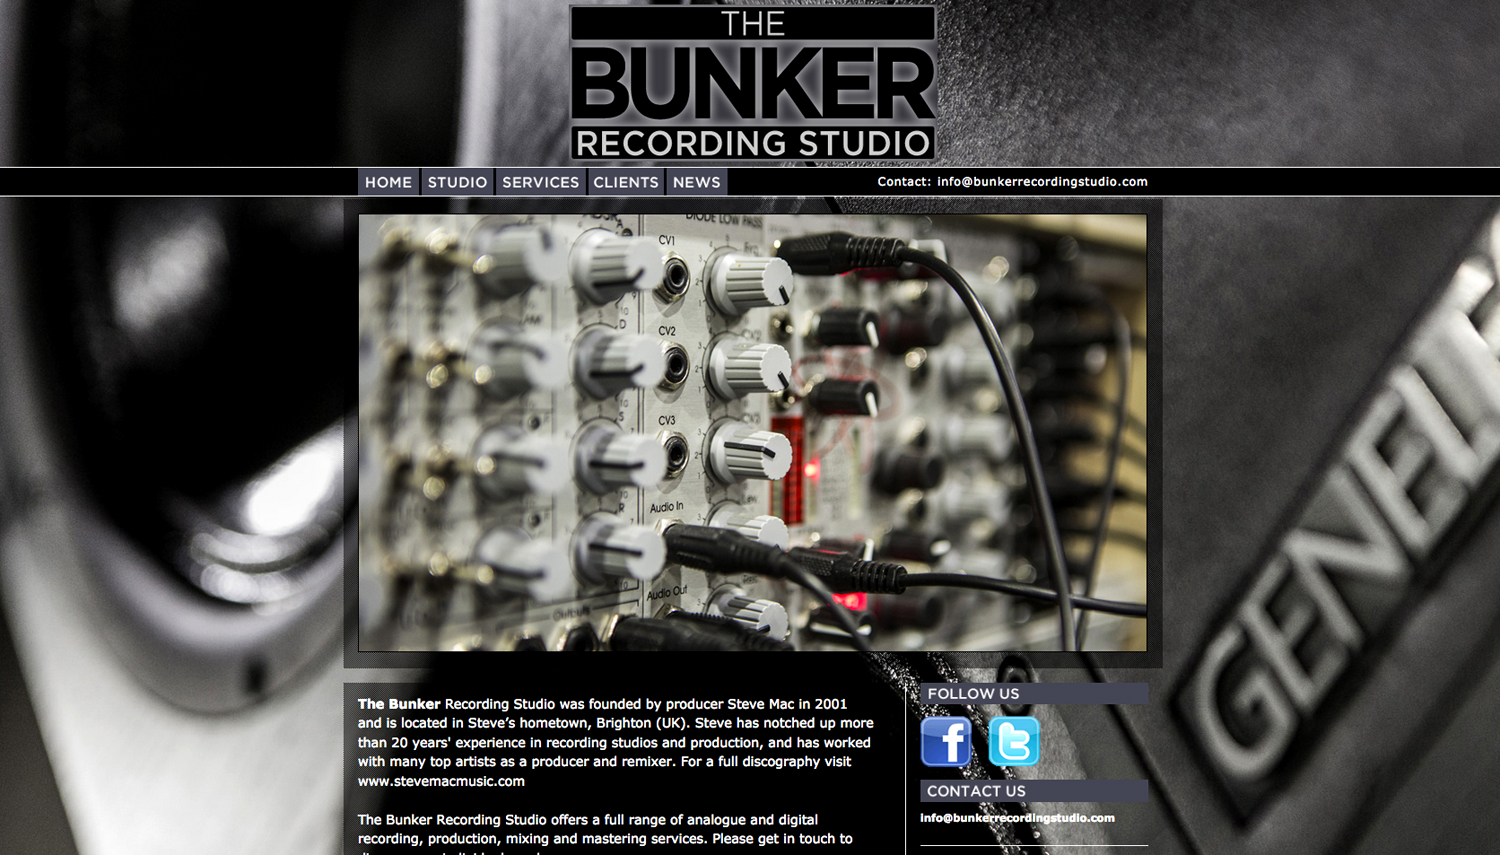 The Bunker Recording Studio website designed by Hook Web and Print